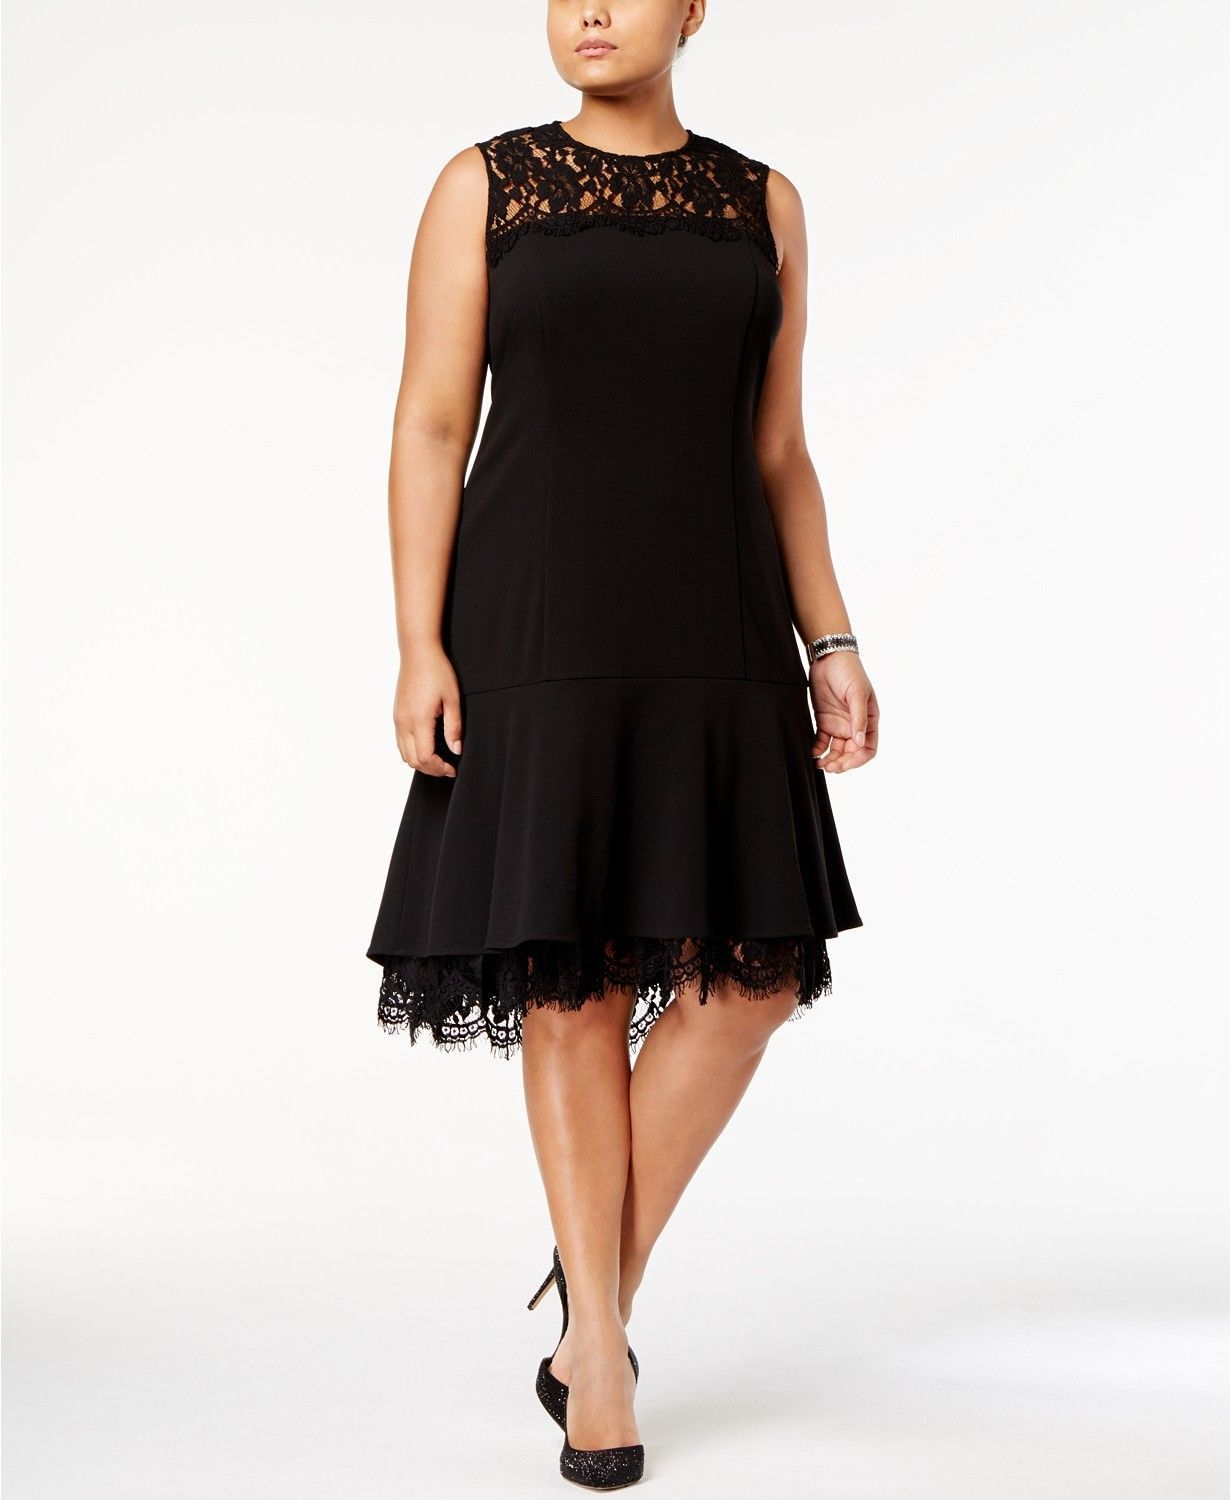 Primary image for Calvin Klein Lace-Trim A-Line Dress BLACK SIZE 0P